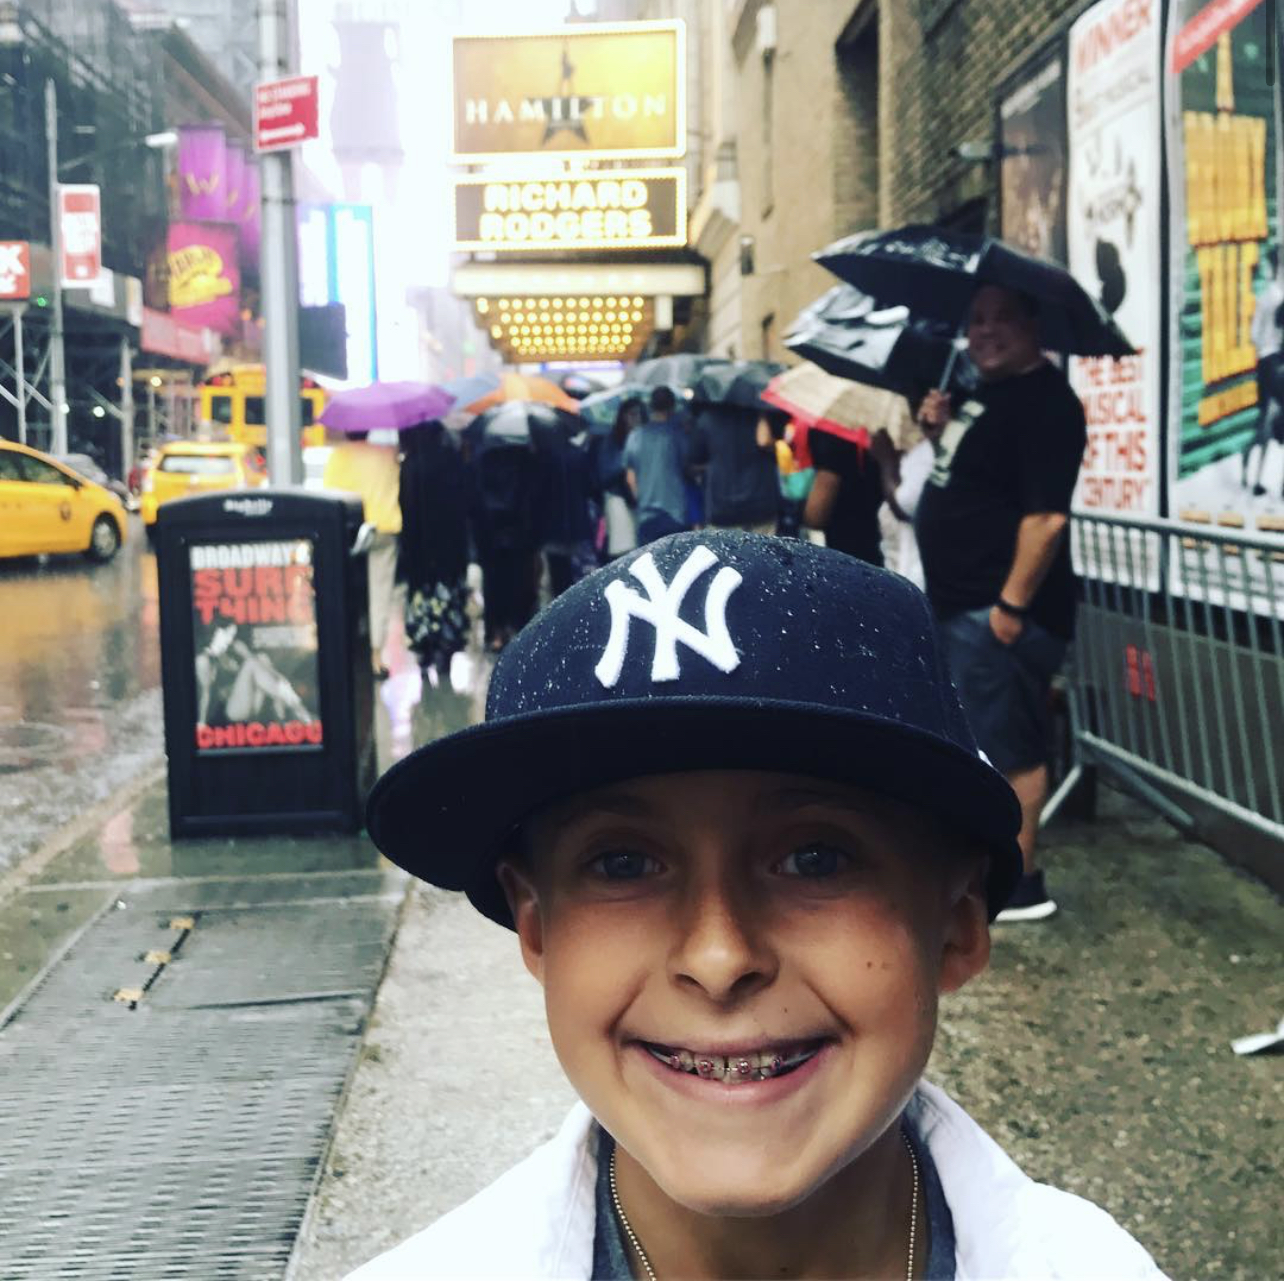 Image of a boy, standing on the street in New York City. Marquis at the Richard Rogers Theatre on Broadway in the background. Marquis is advertising HAMILTON the musical. The boy is grinning from ear to ear, wearing a New York Yankess baseball cap. The boy has braces on his teeth.